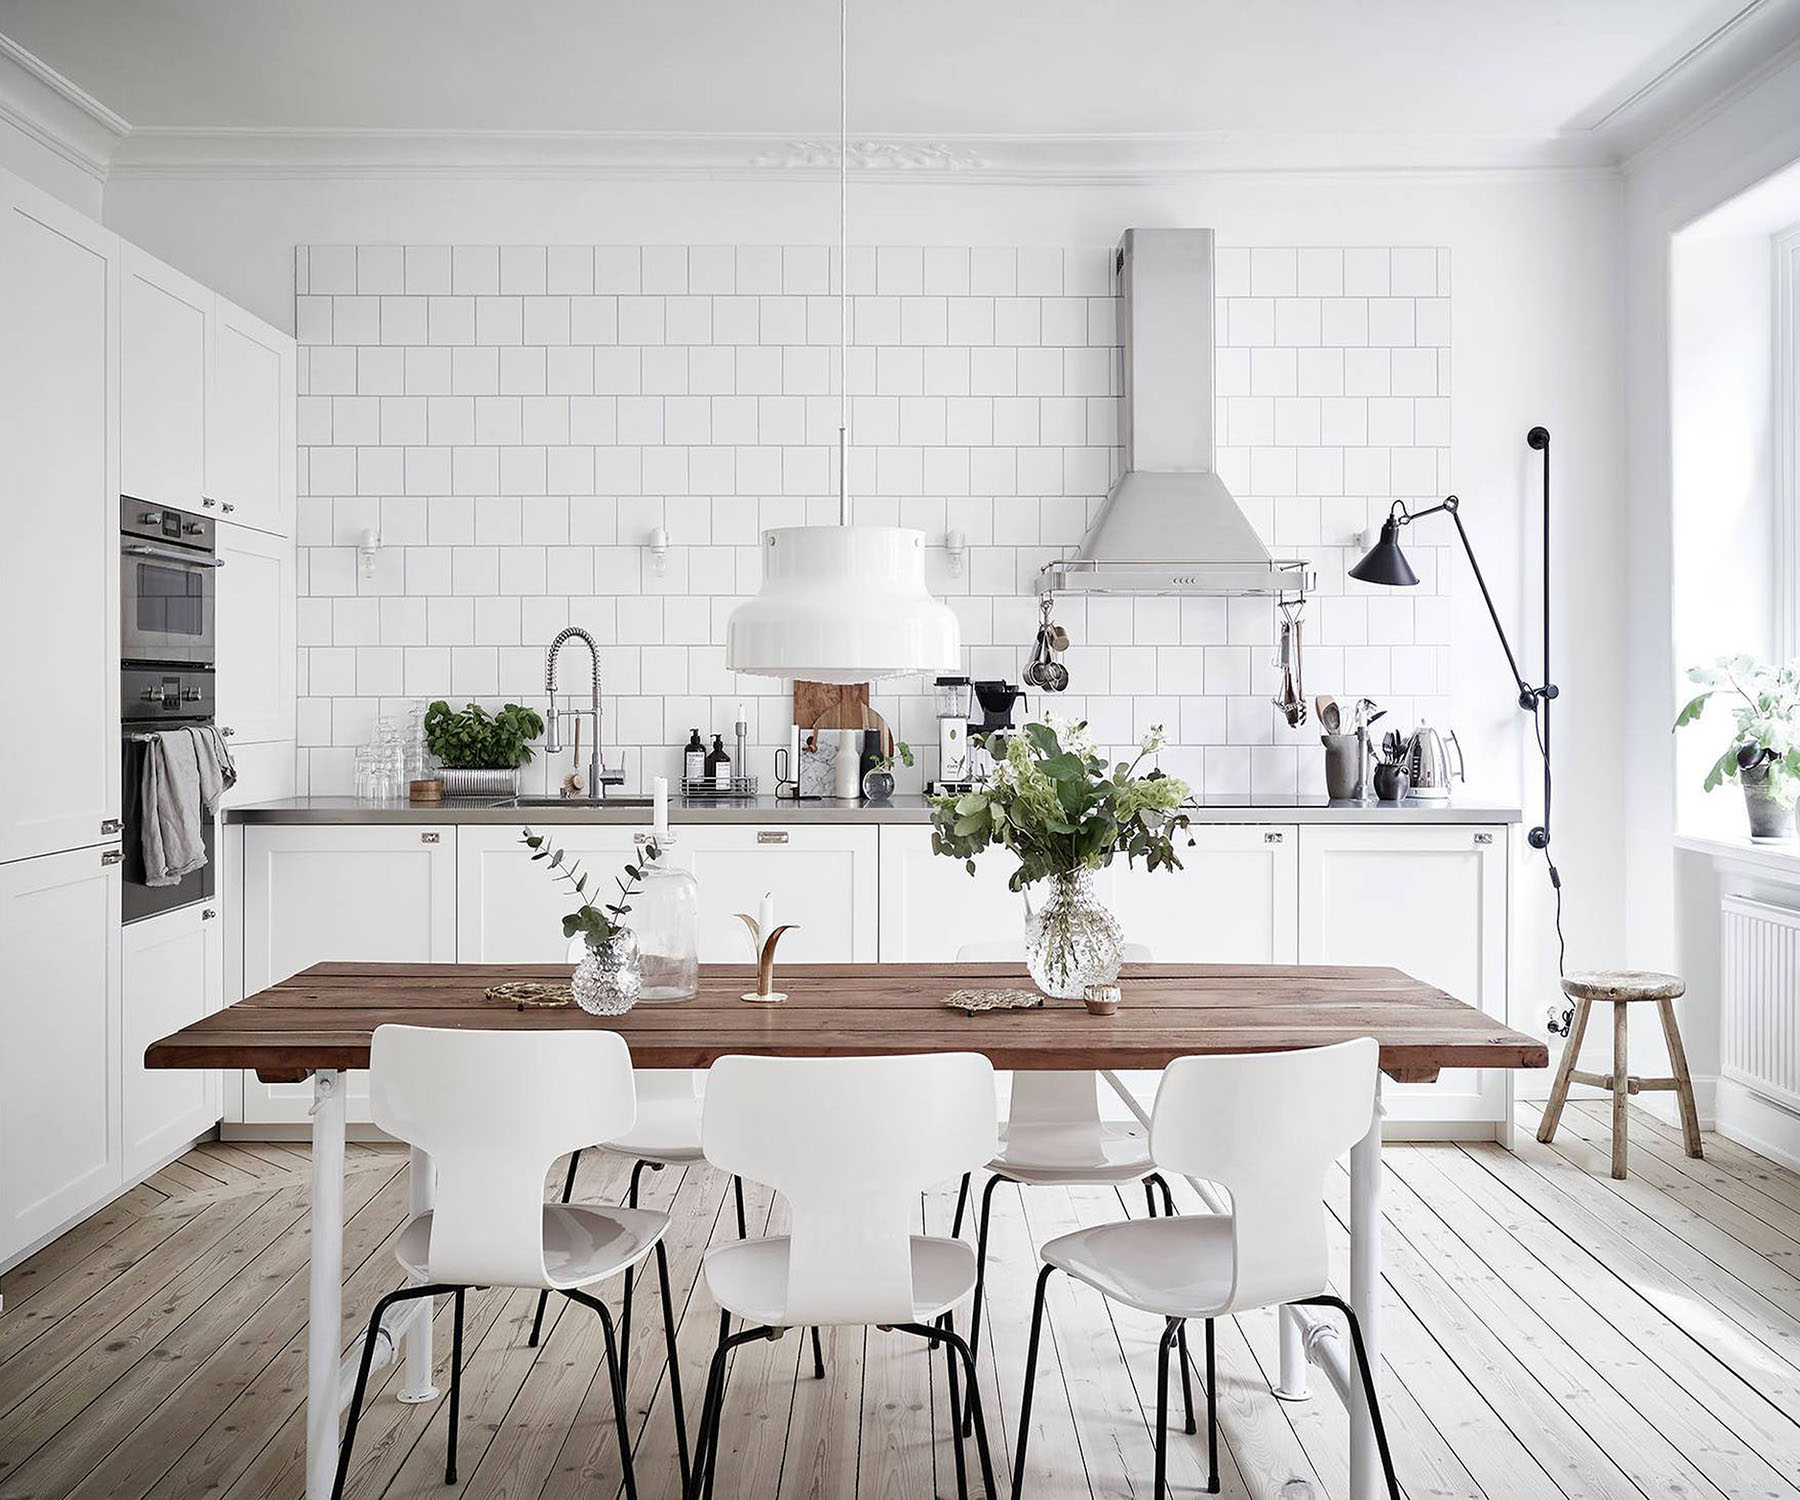 Kitchen Interior Design: Top 10 Tips For Adding Scandinavian Style To Your Home